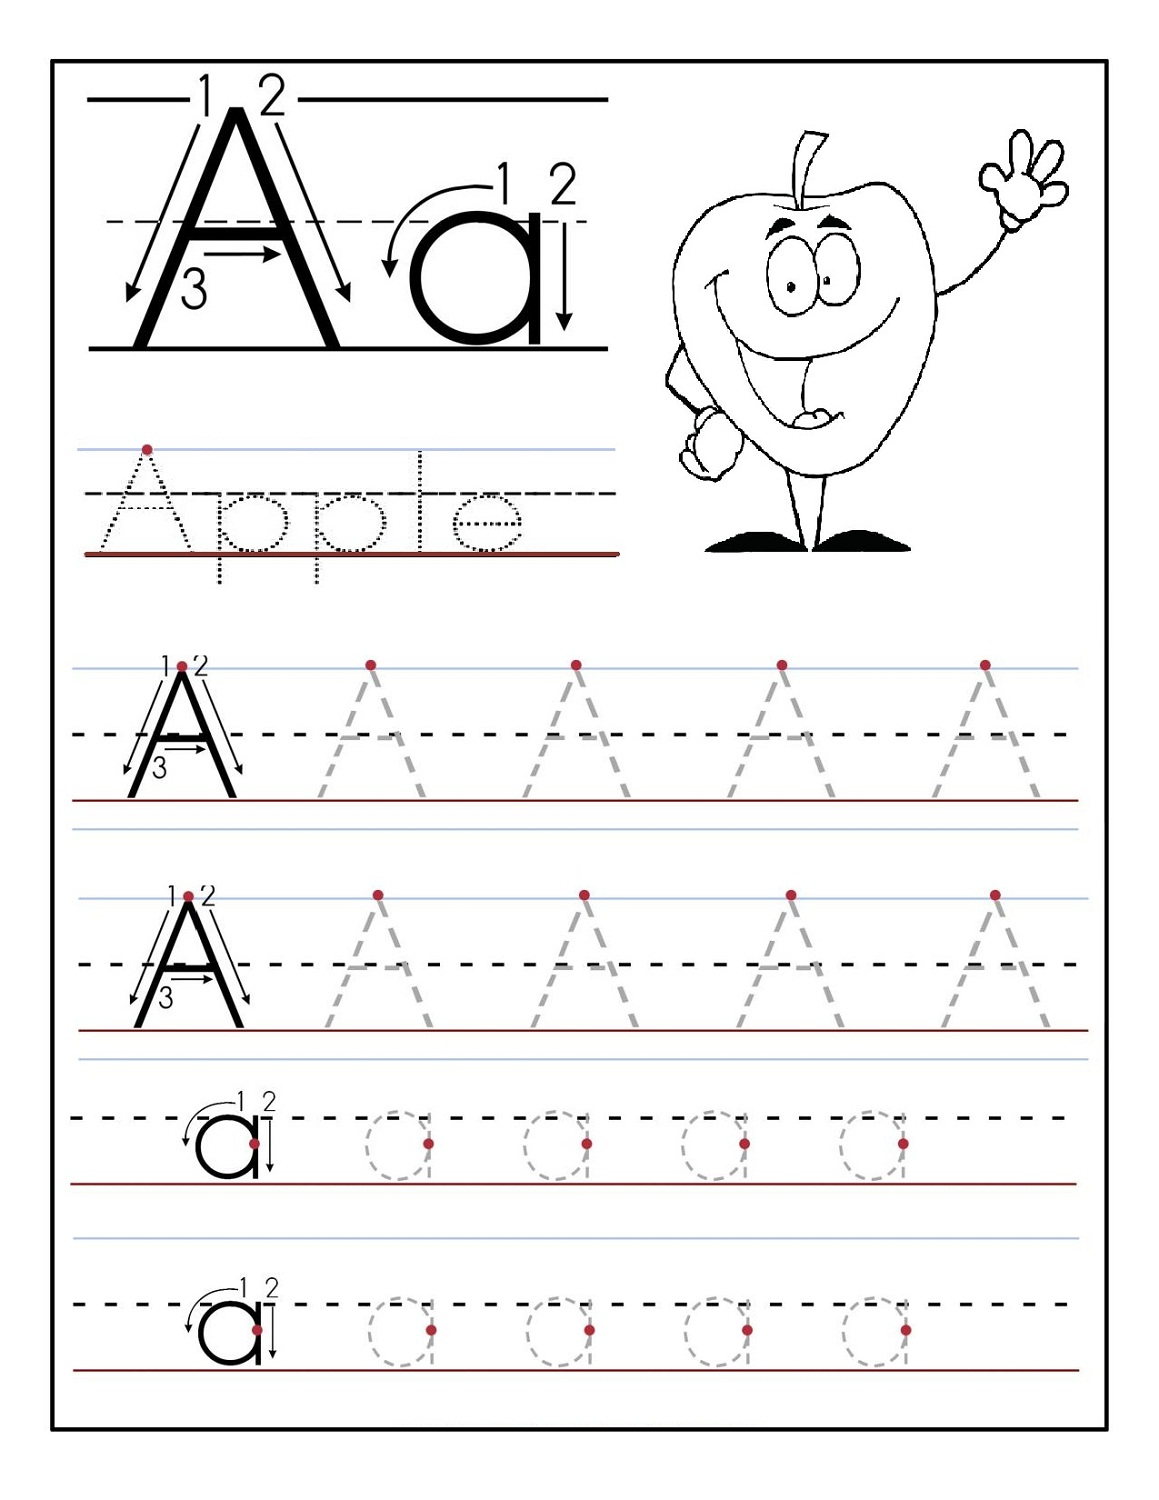 worksheet Free Printable Reading Worksheets free printable reading worksheets for kindergarten abitlikethis learning to write letters worksheet narrativamente